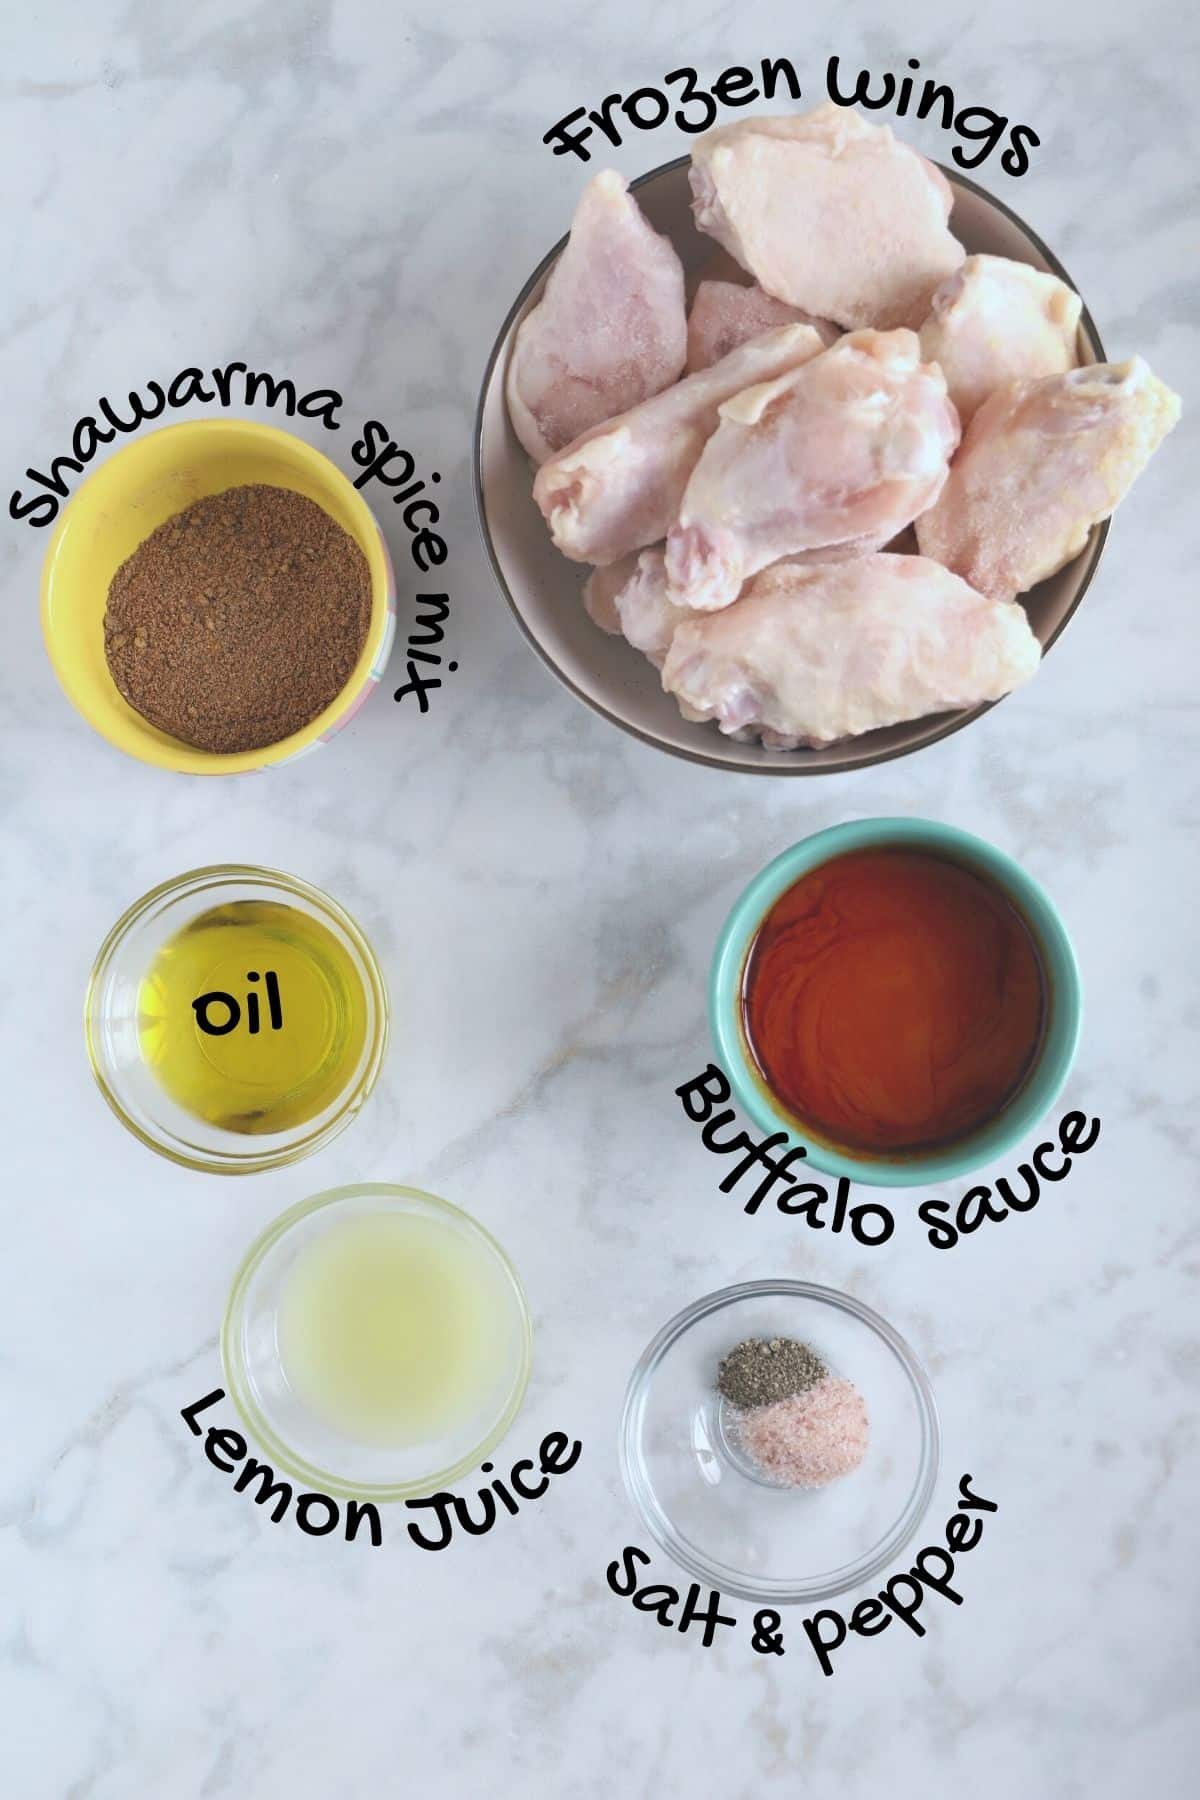 Air fryer chicken wings ingredients placed on a white surface.